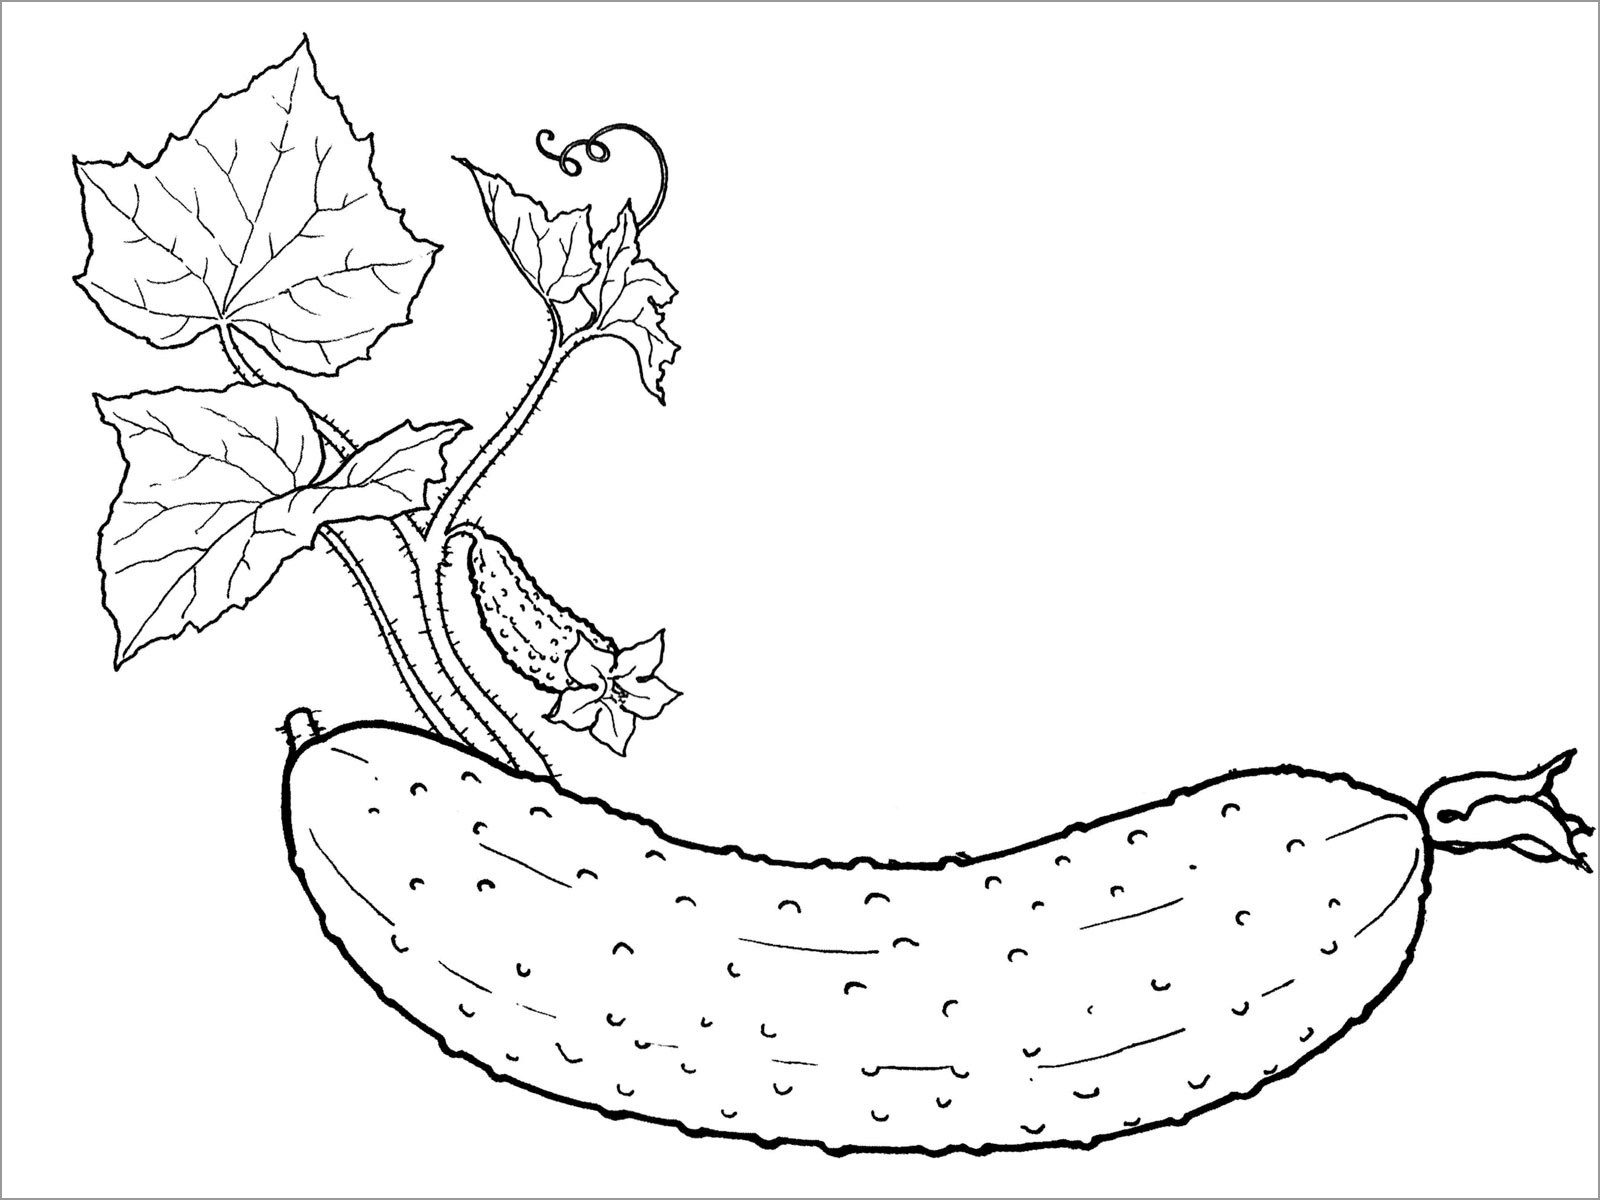 Cucumber Vine Coloring Pages